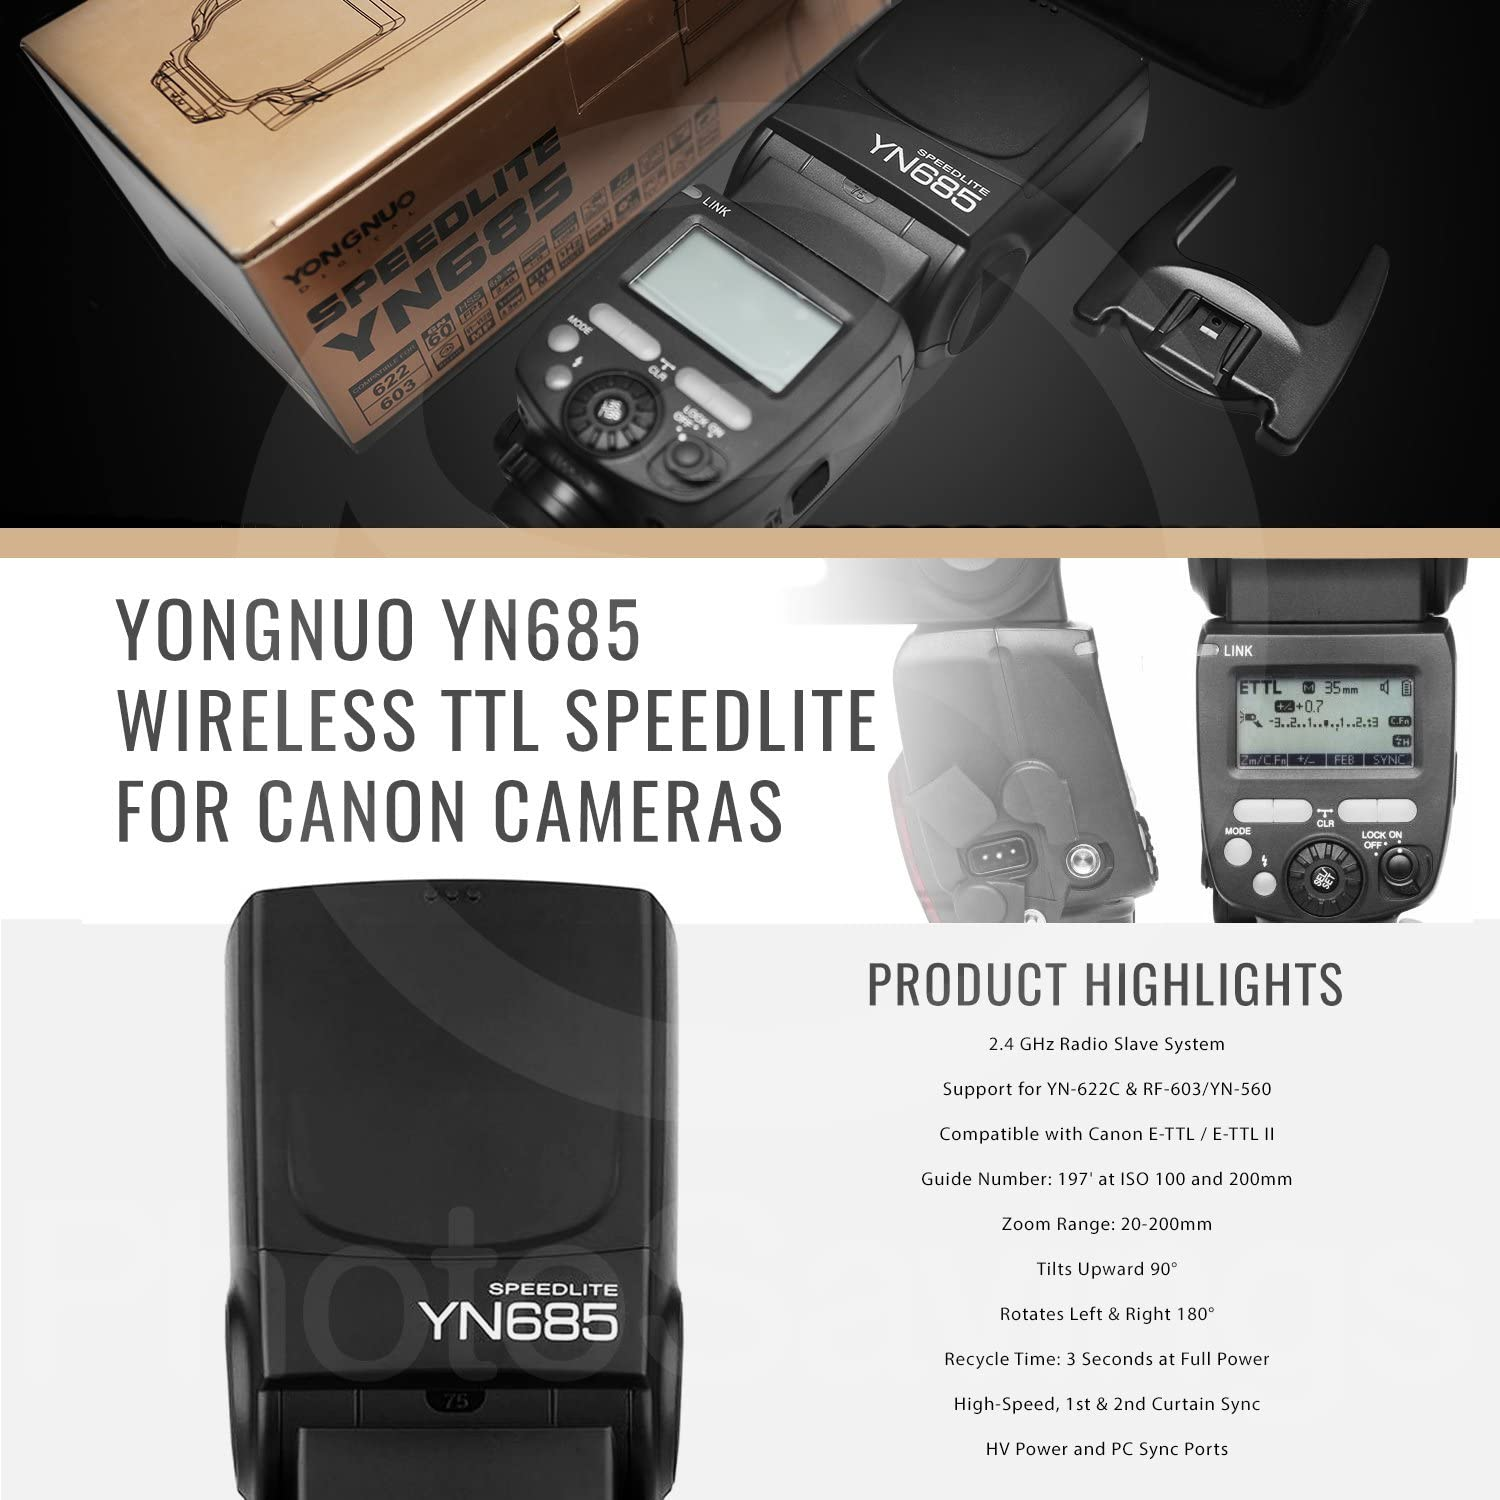 Yongnuo YN685 Wireless TTL Speedlite for Canon Cameras with Flash Bracket and Diffuser Xpix Cleaning Kit DSLR Shoulder Strap and Deluxe Bundle